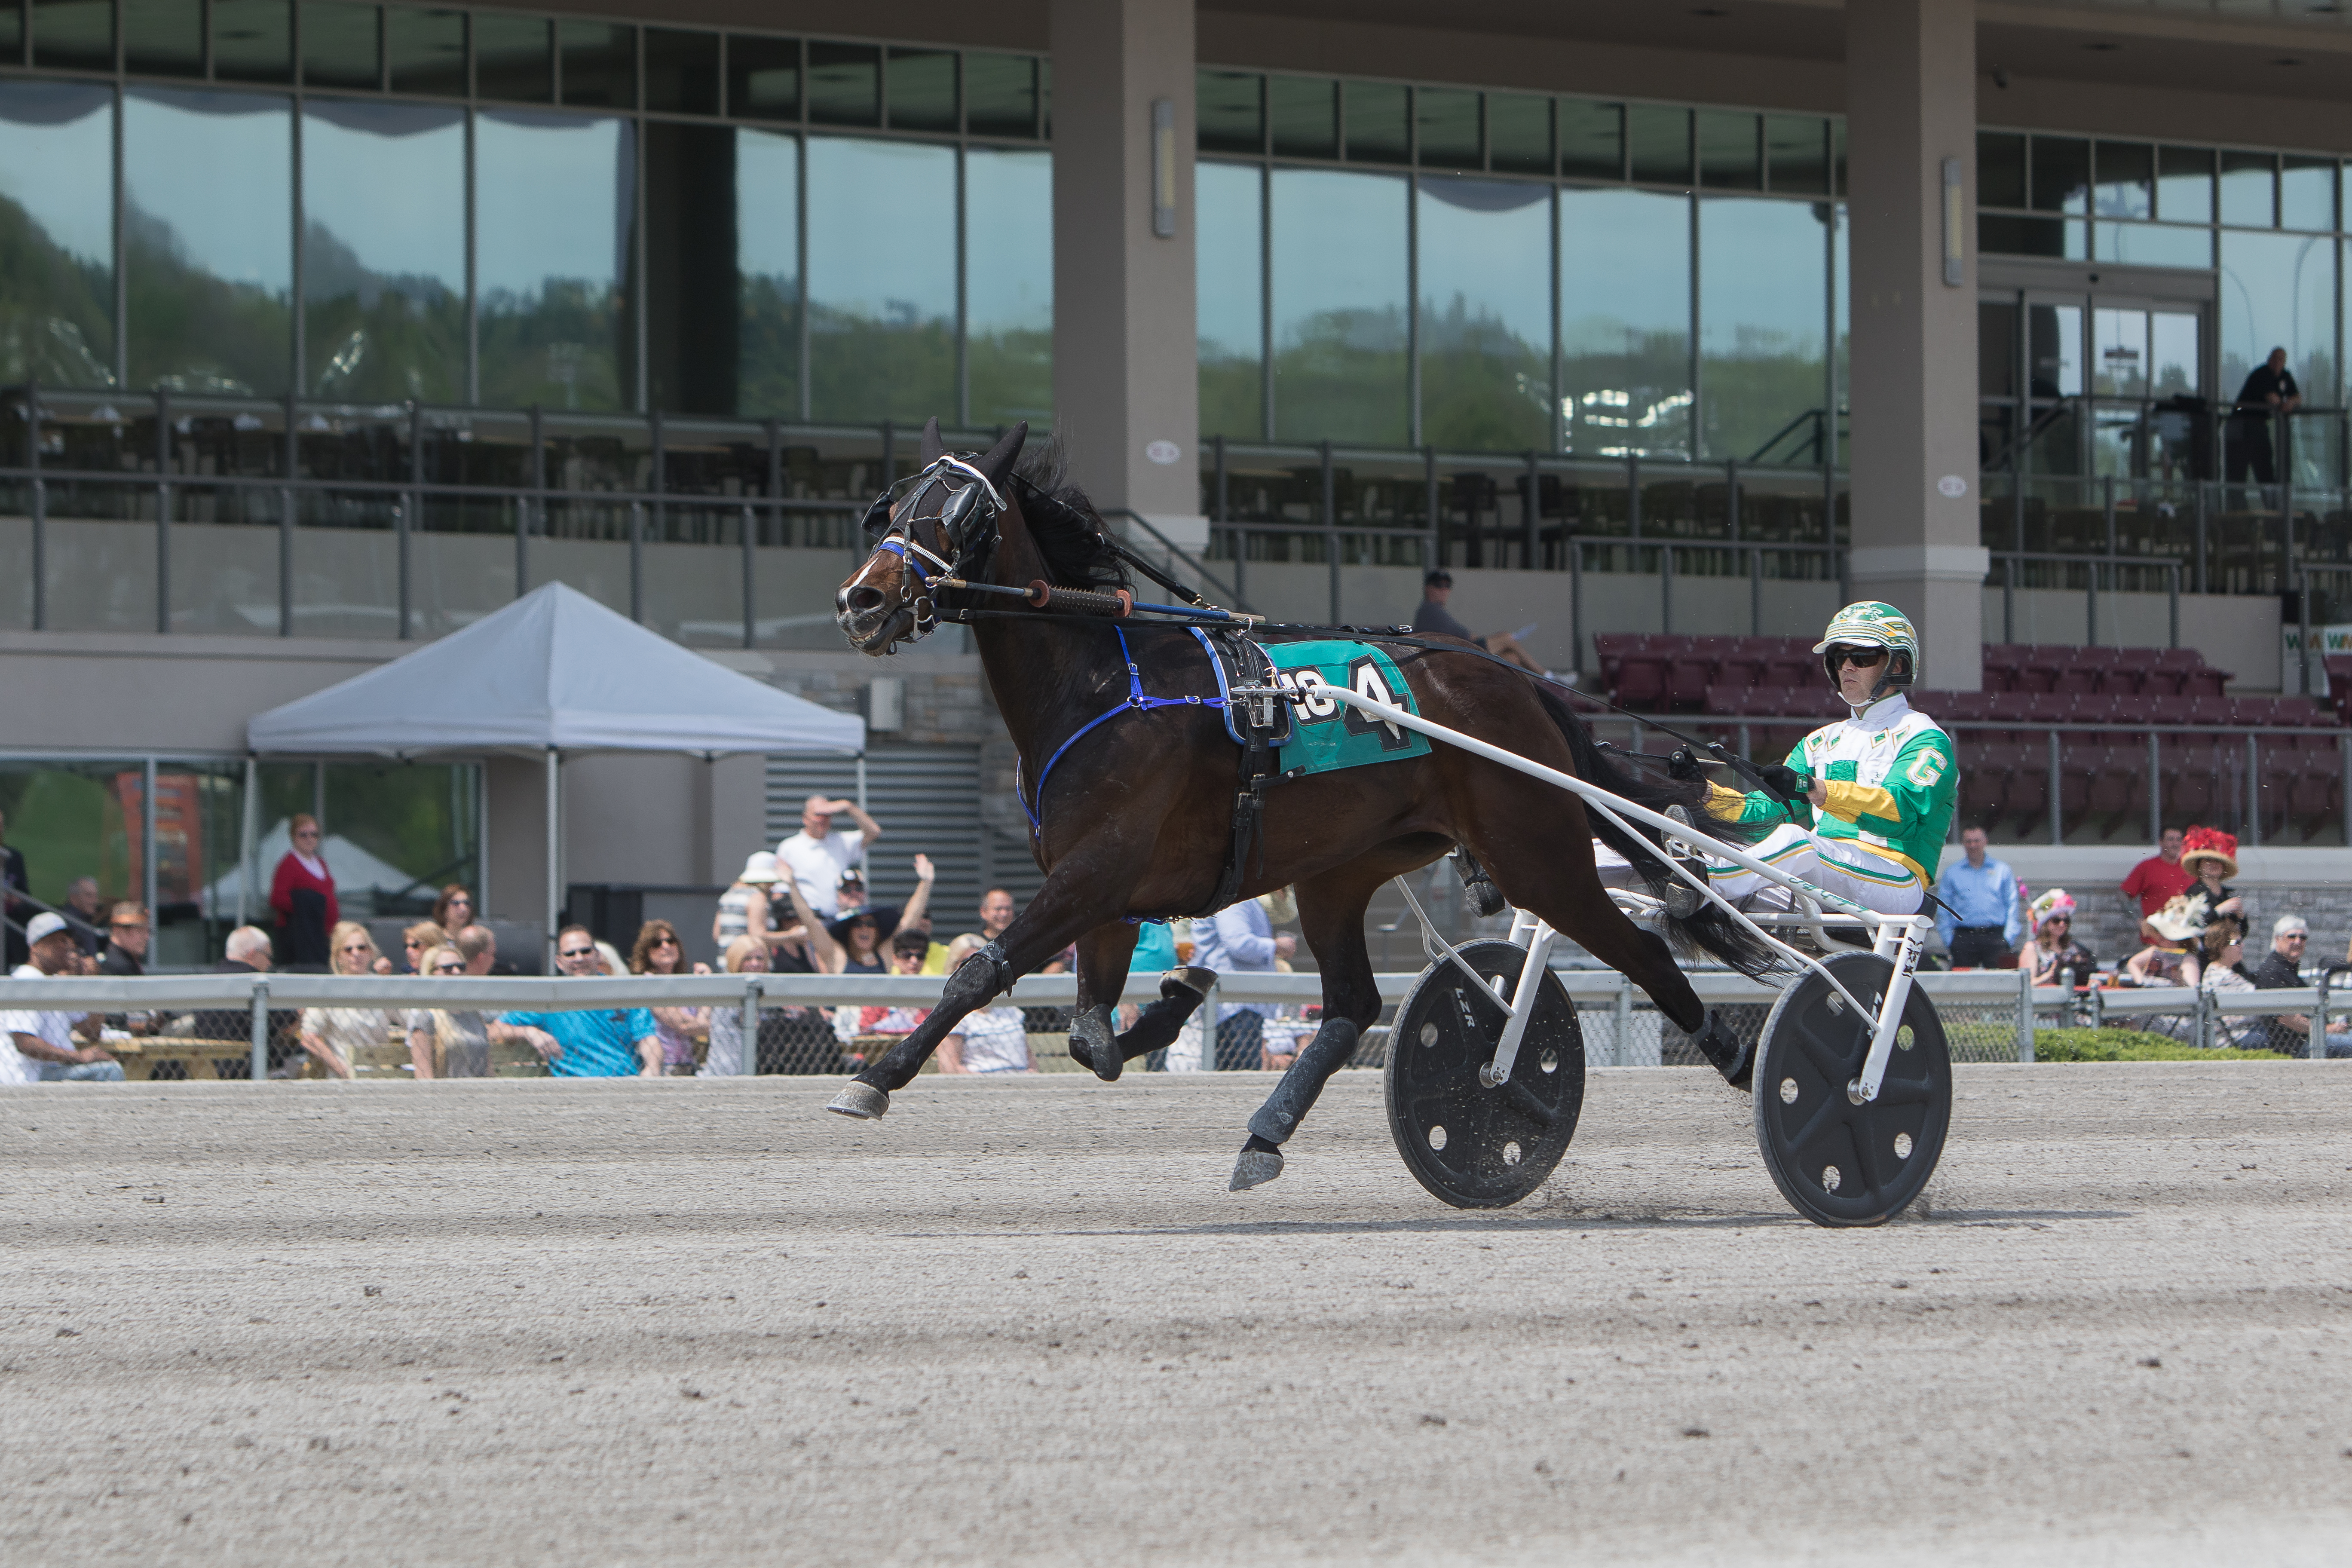 Live Harness Racing at The Meadows